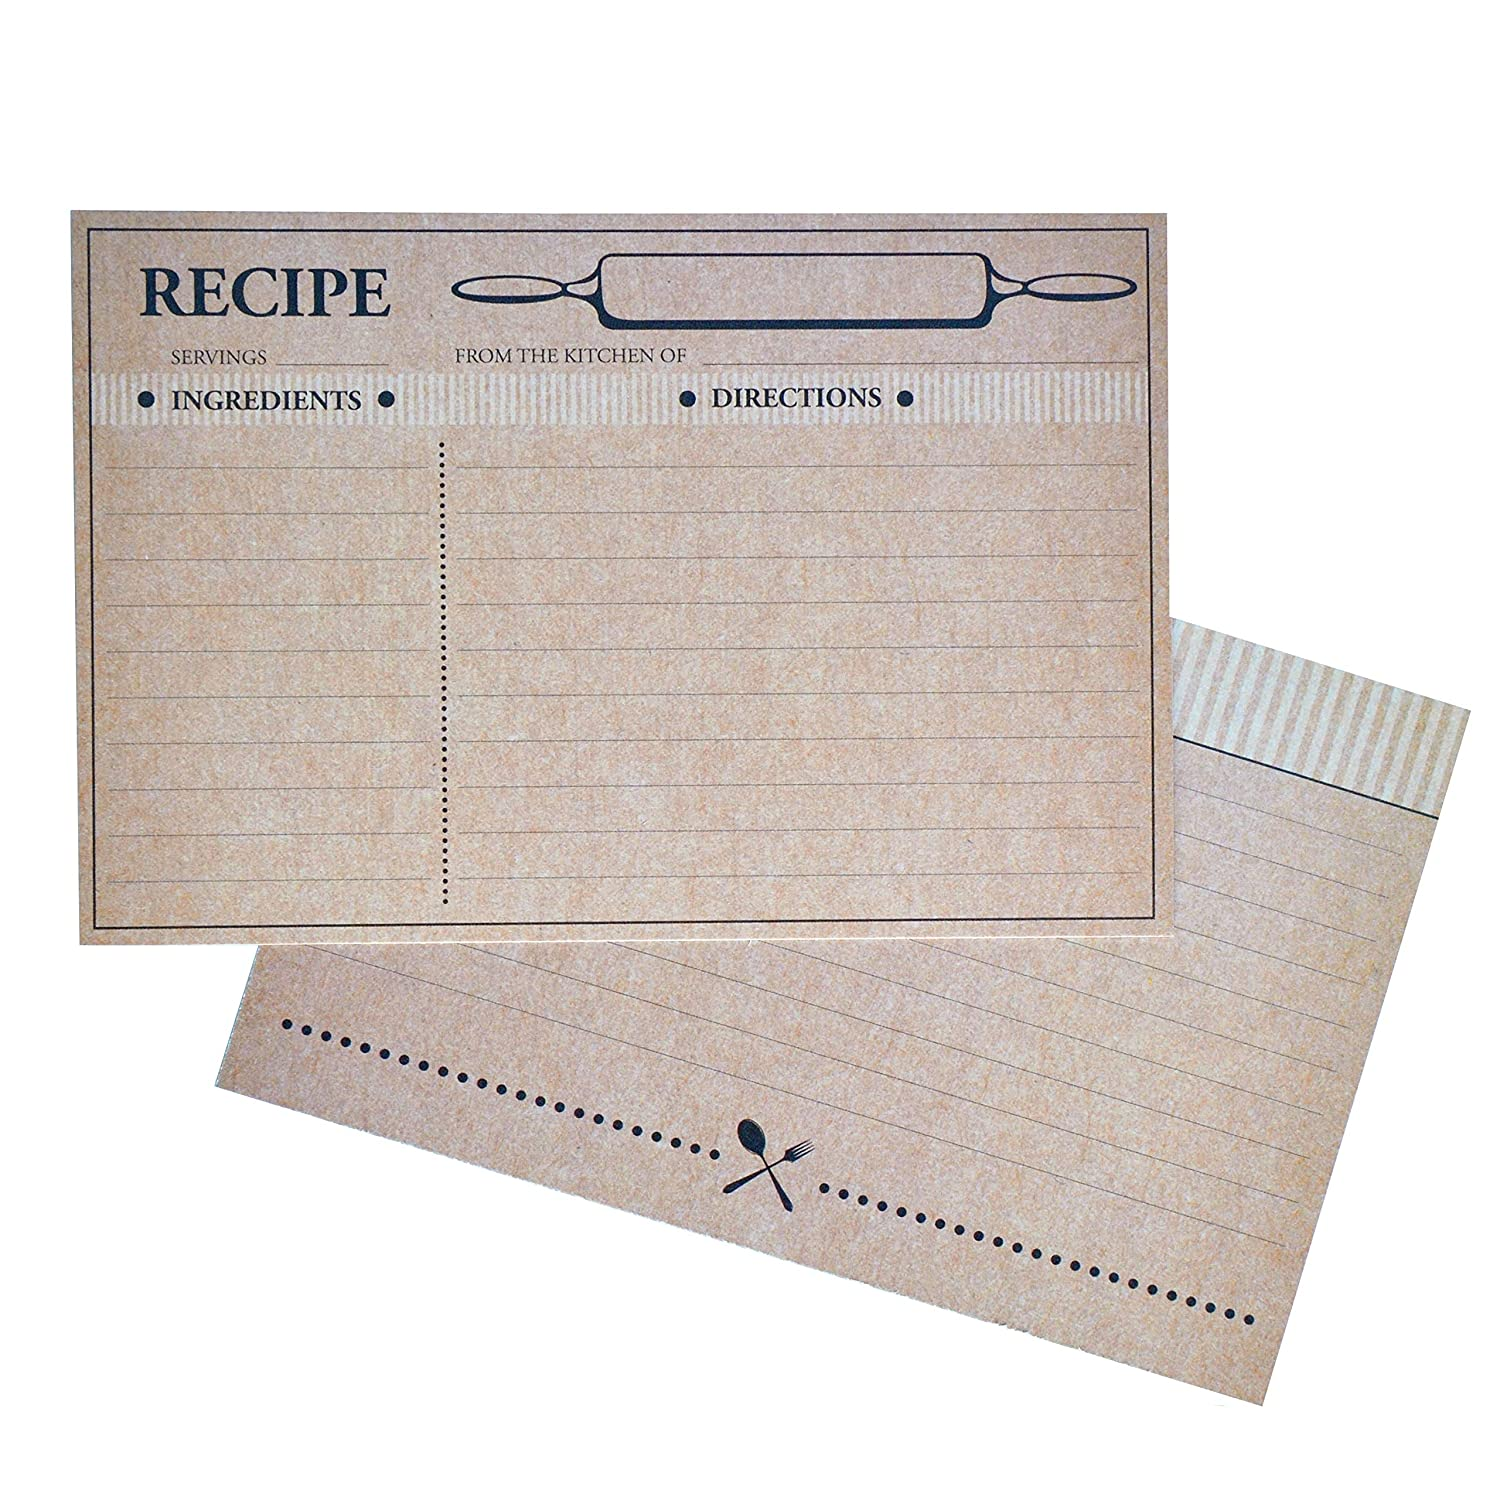 Home Advantage Farmhouse Rustic Recipe Cards 4x6, (50) Double Sided Kraft Design Cards